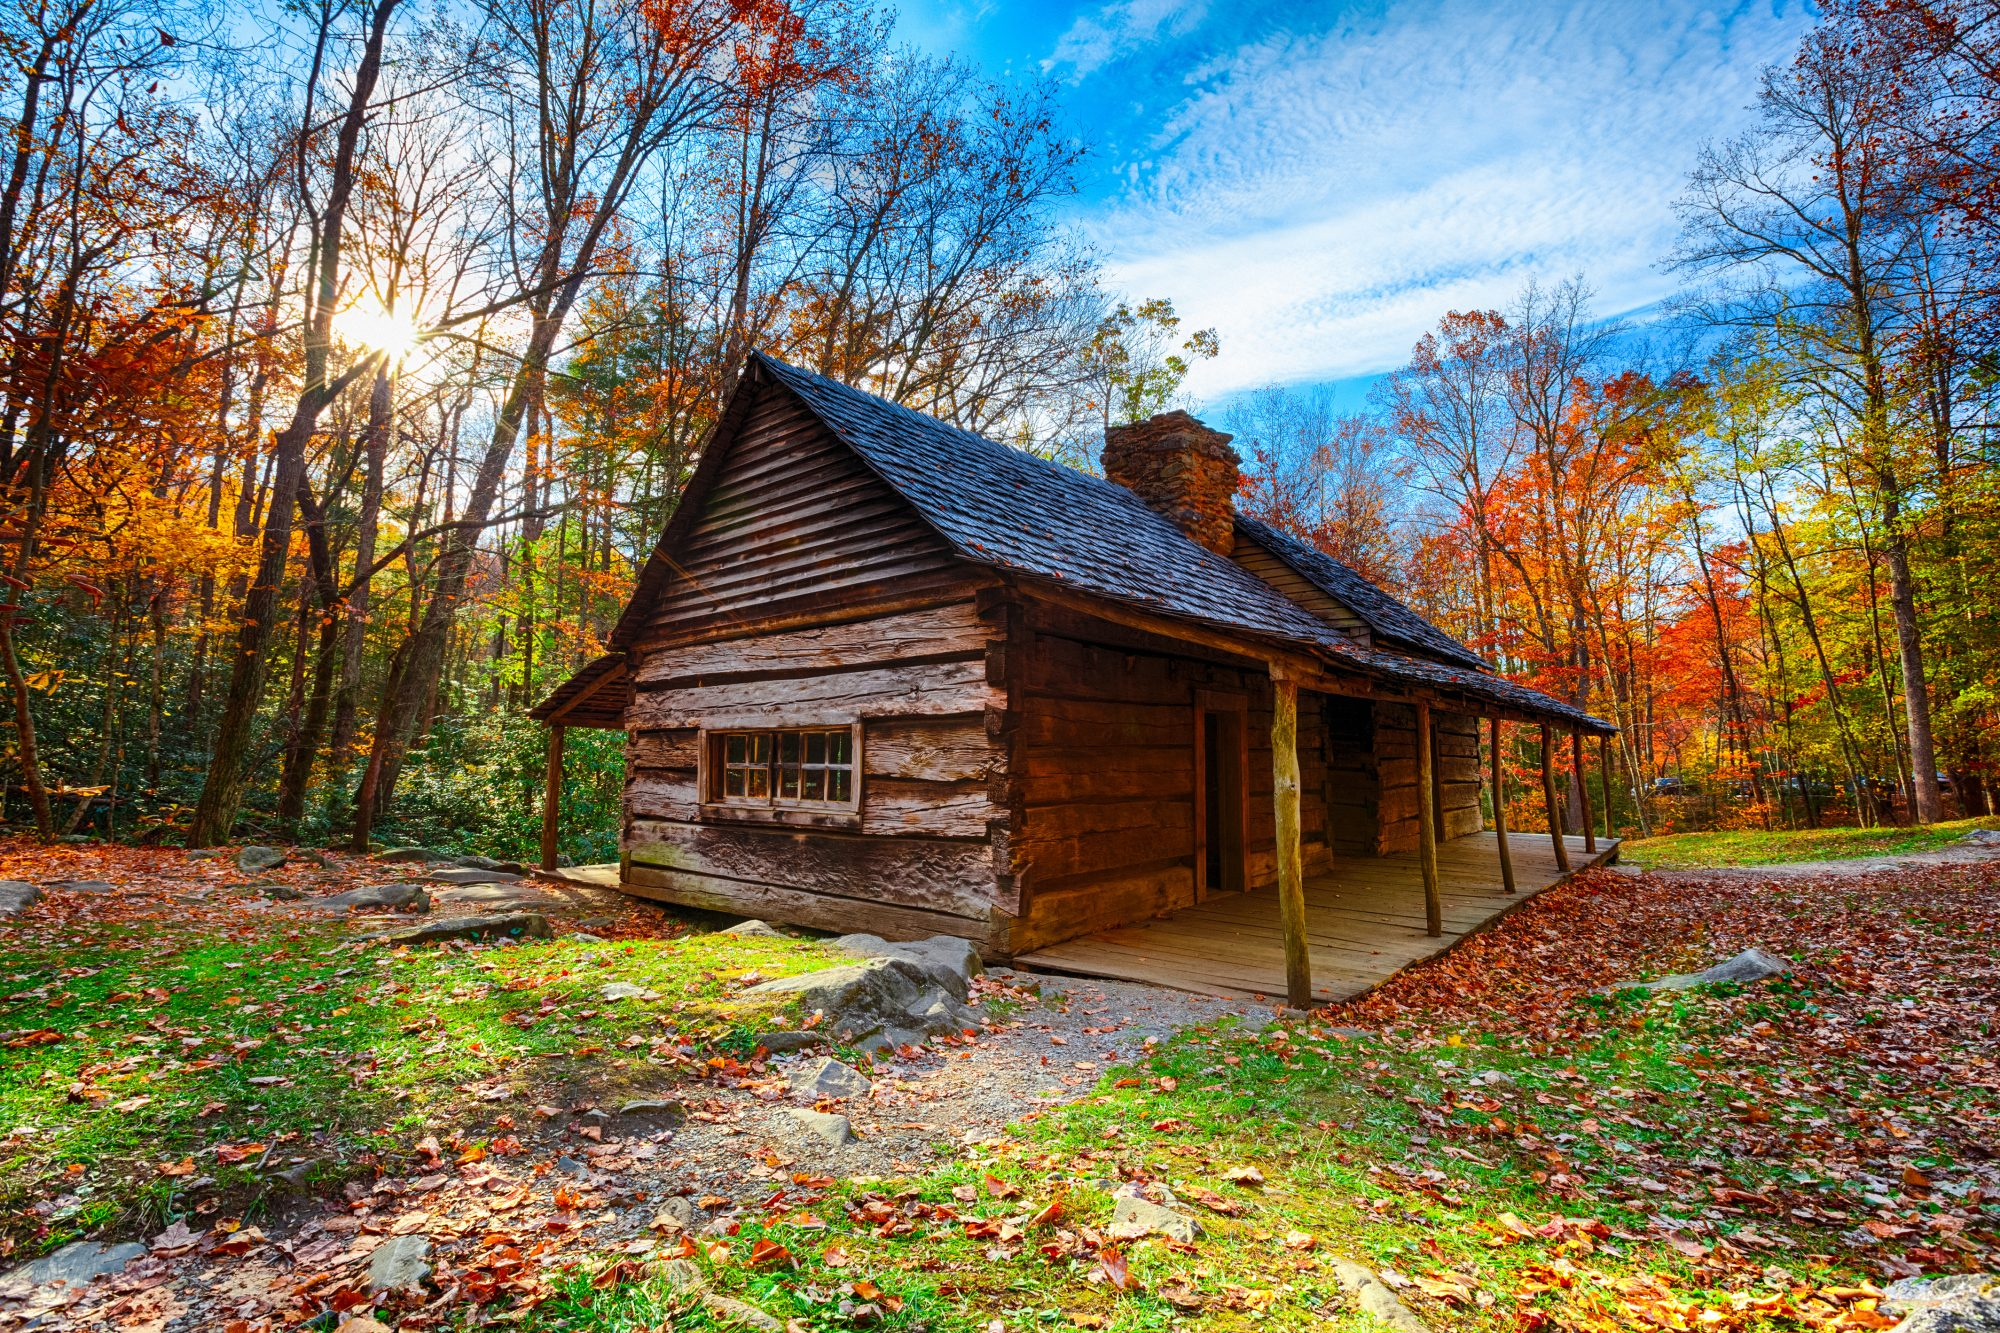 Rustic Cabin in the Great Smoky Mountains